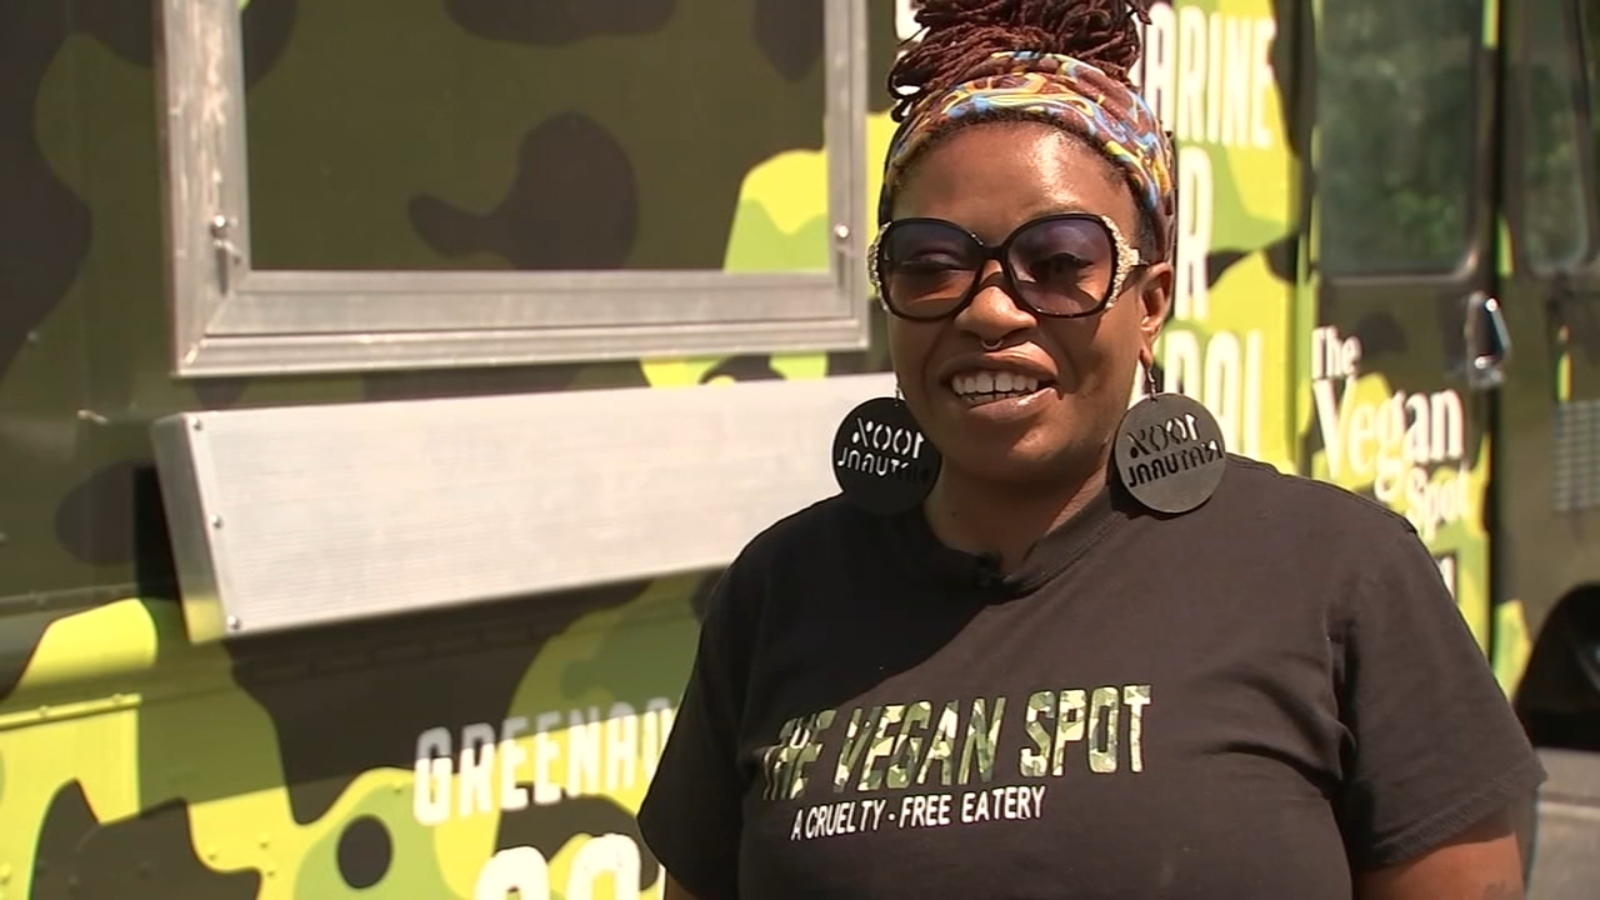 Fayetteville vegan food truck owner hopes to expand healthy eating choices for area